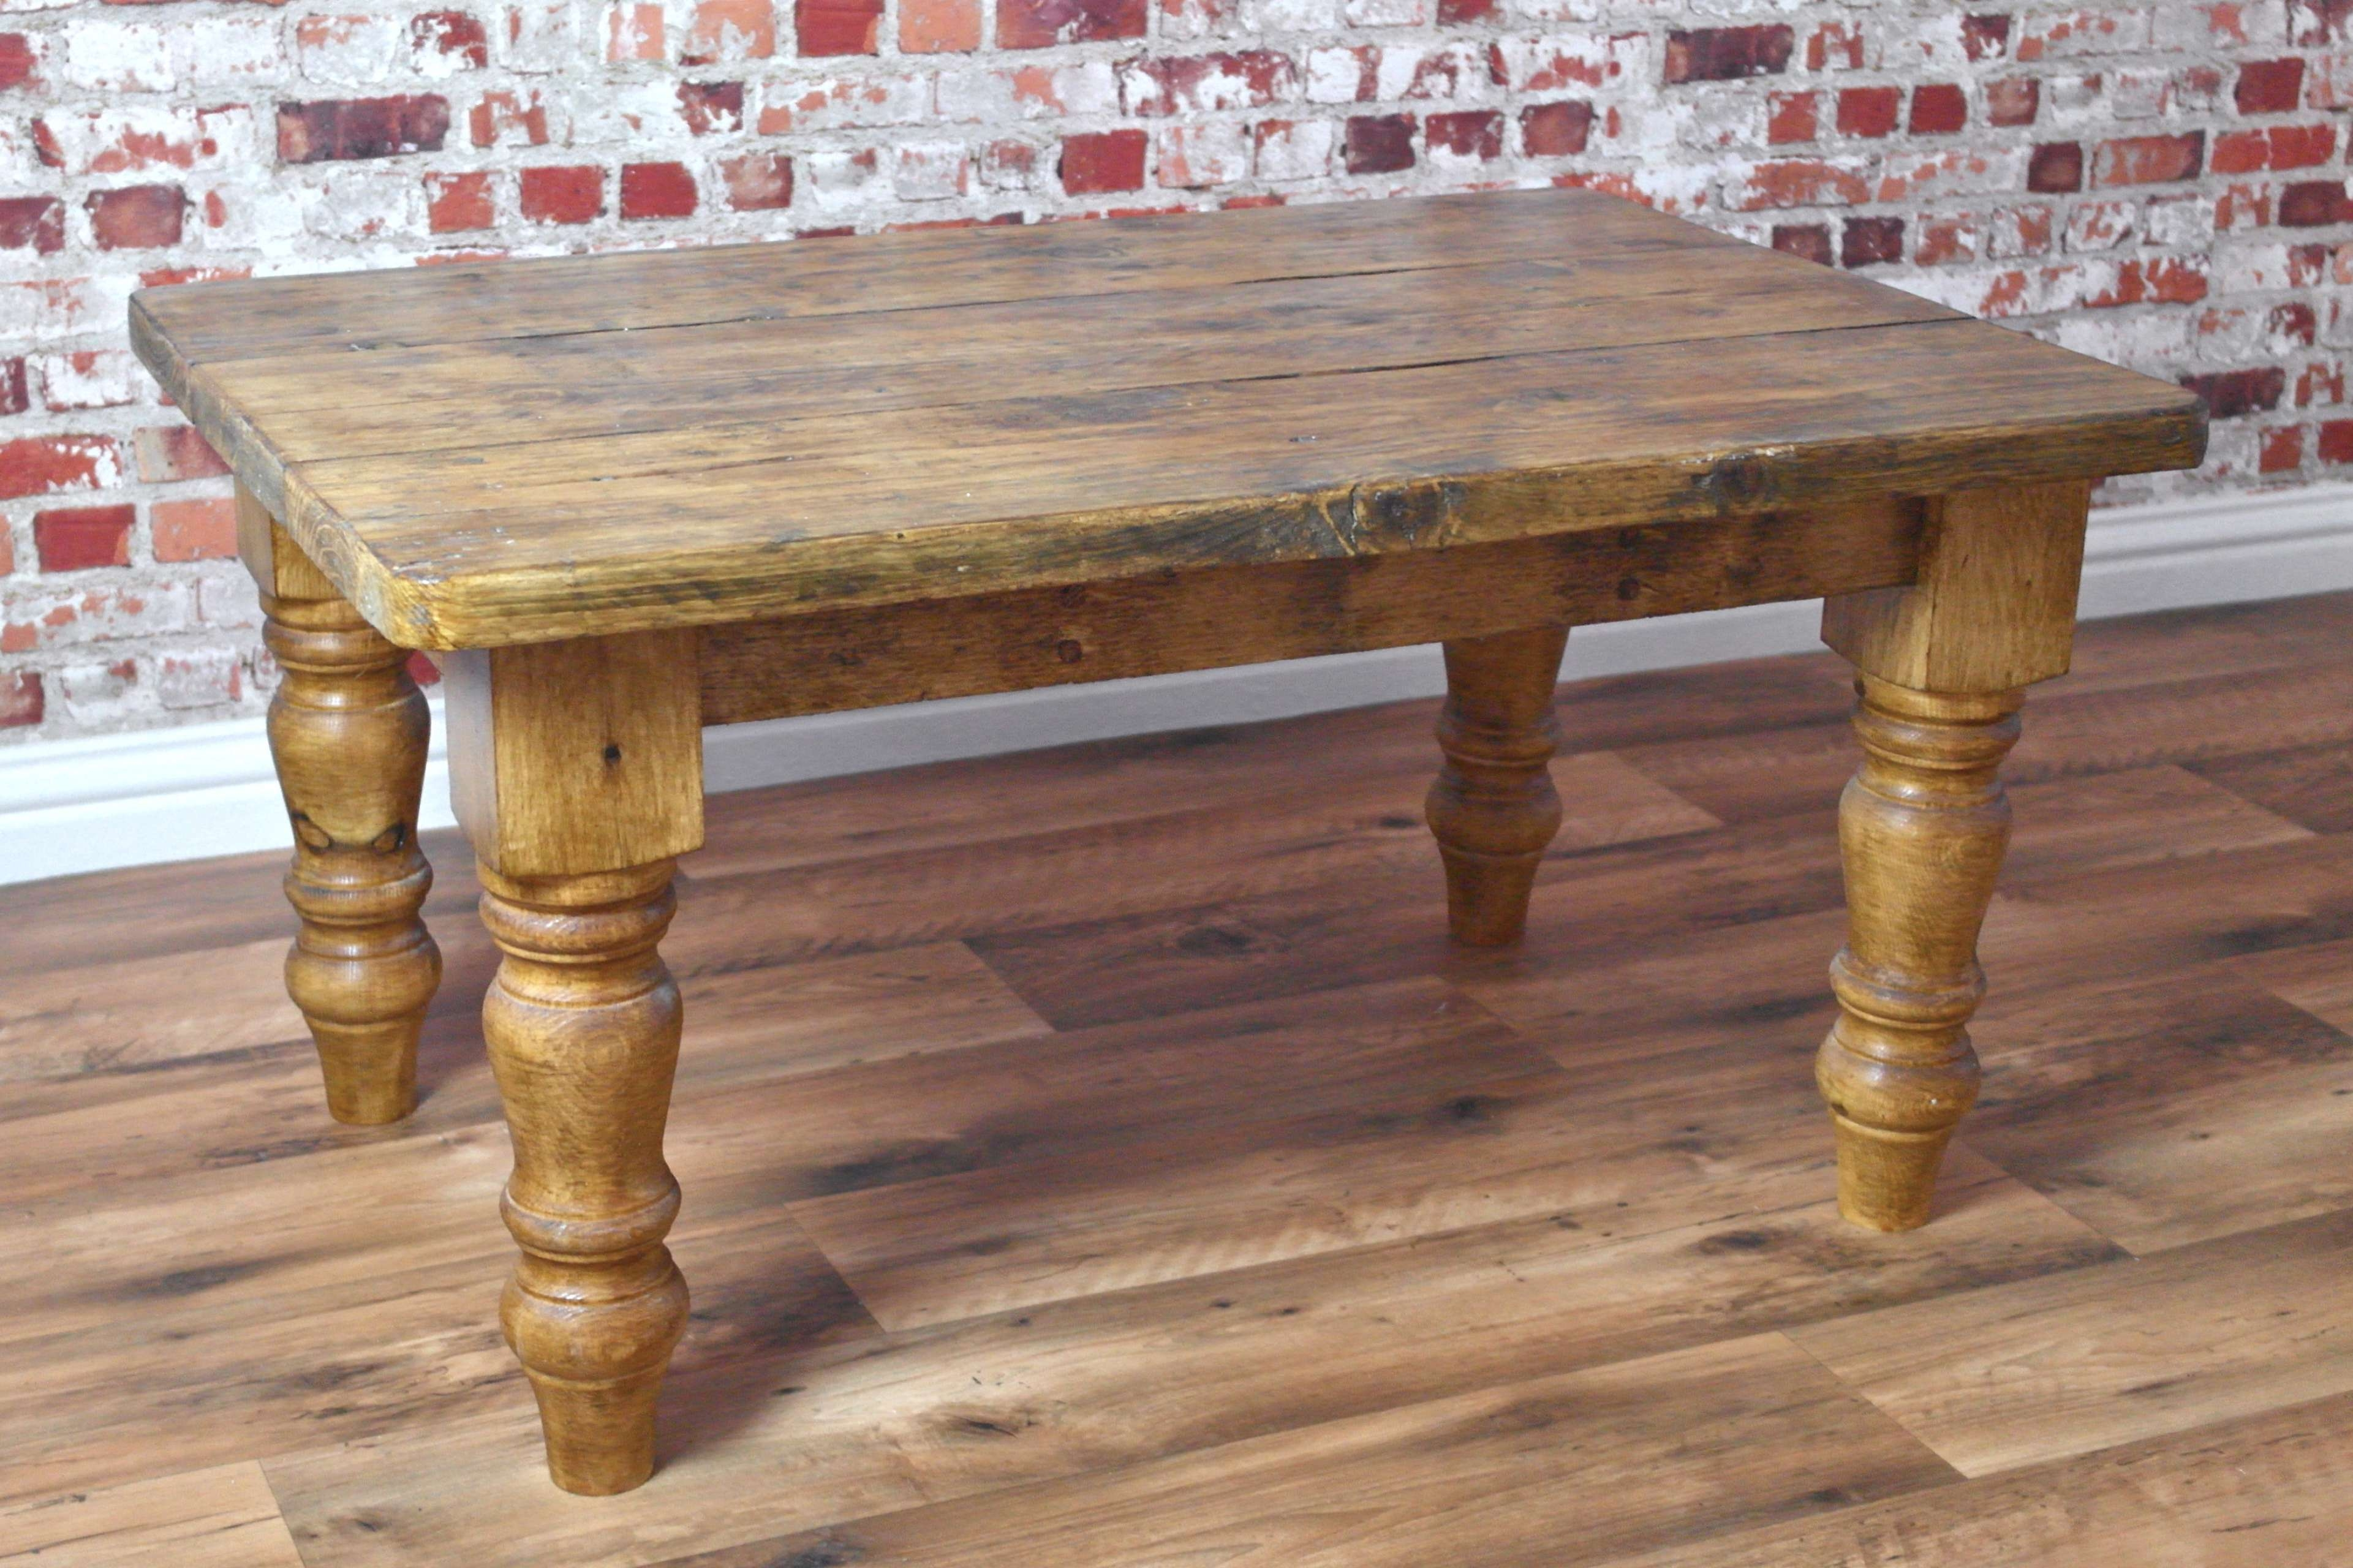 Rustic Coffee Table Made From Reclaimed Pine Farmhouse Style In Latest Antique Pine Coffee Tables (View 18 of 20)